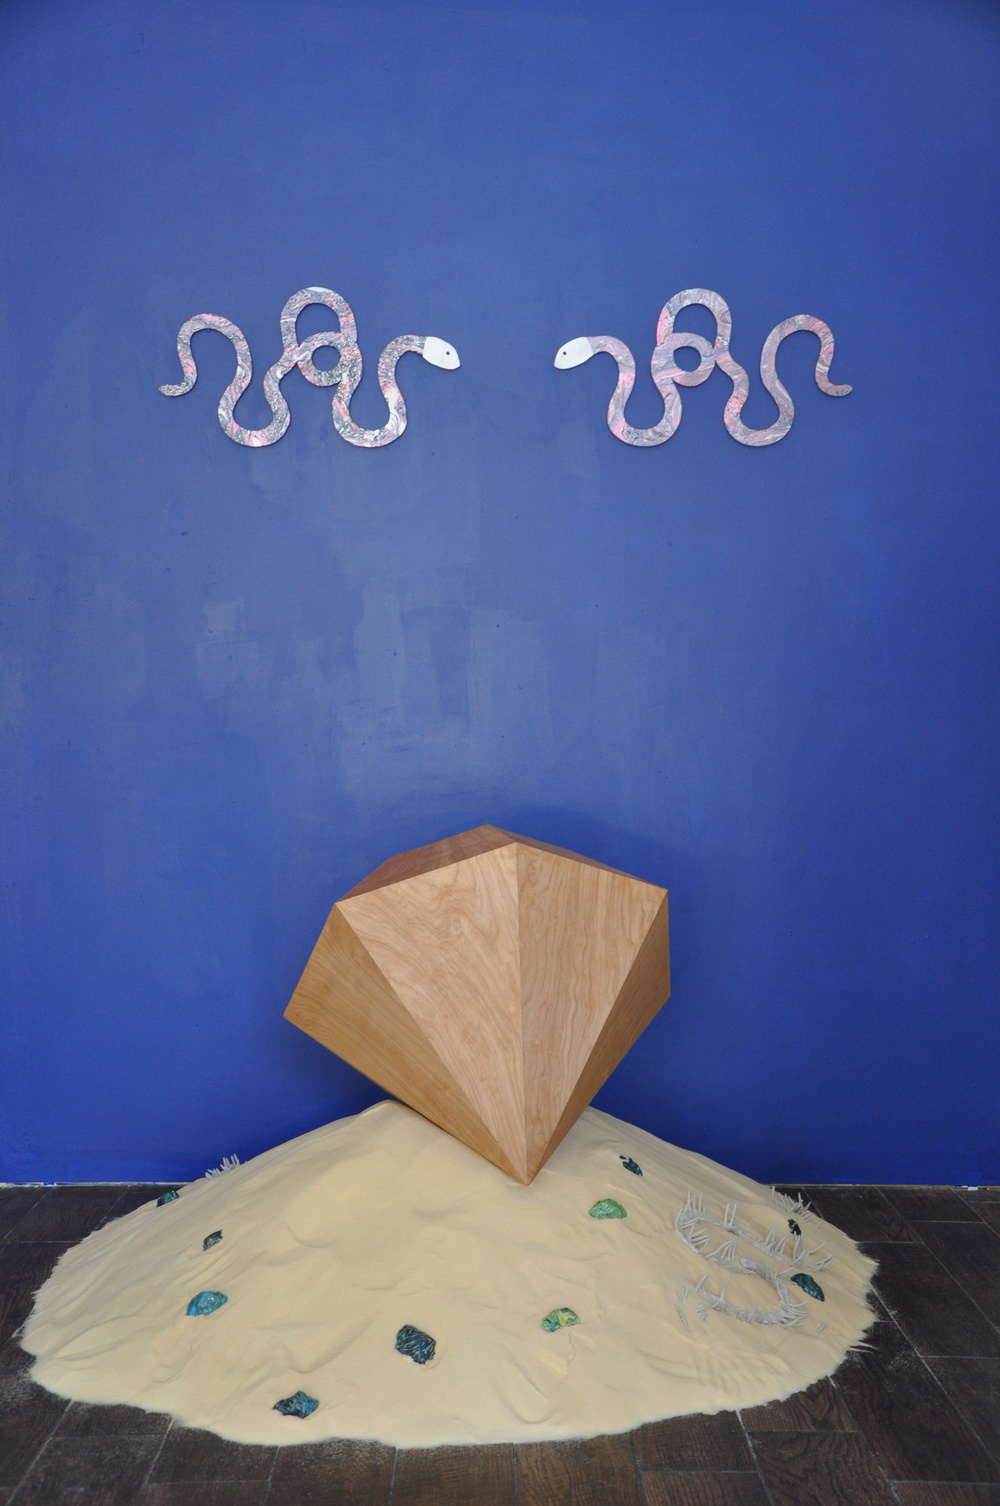 Spring Break  (exhibition view at Residence/SF, San Francisco, CA), 2015, Salt, clay, wood, and tempera, Dimensions variable